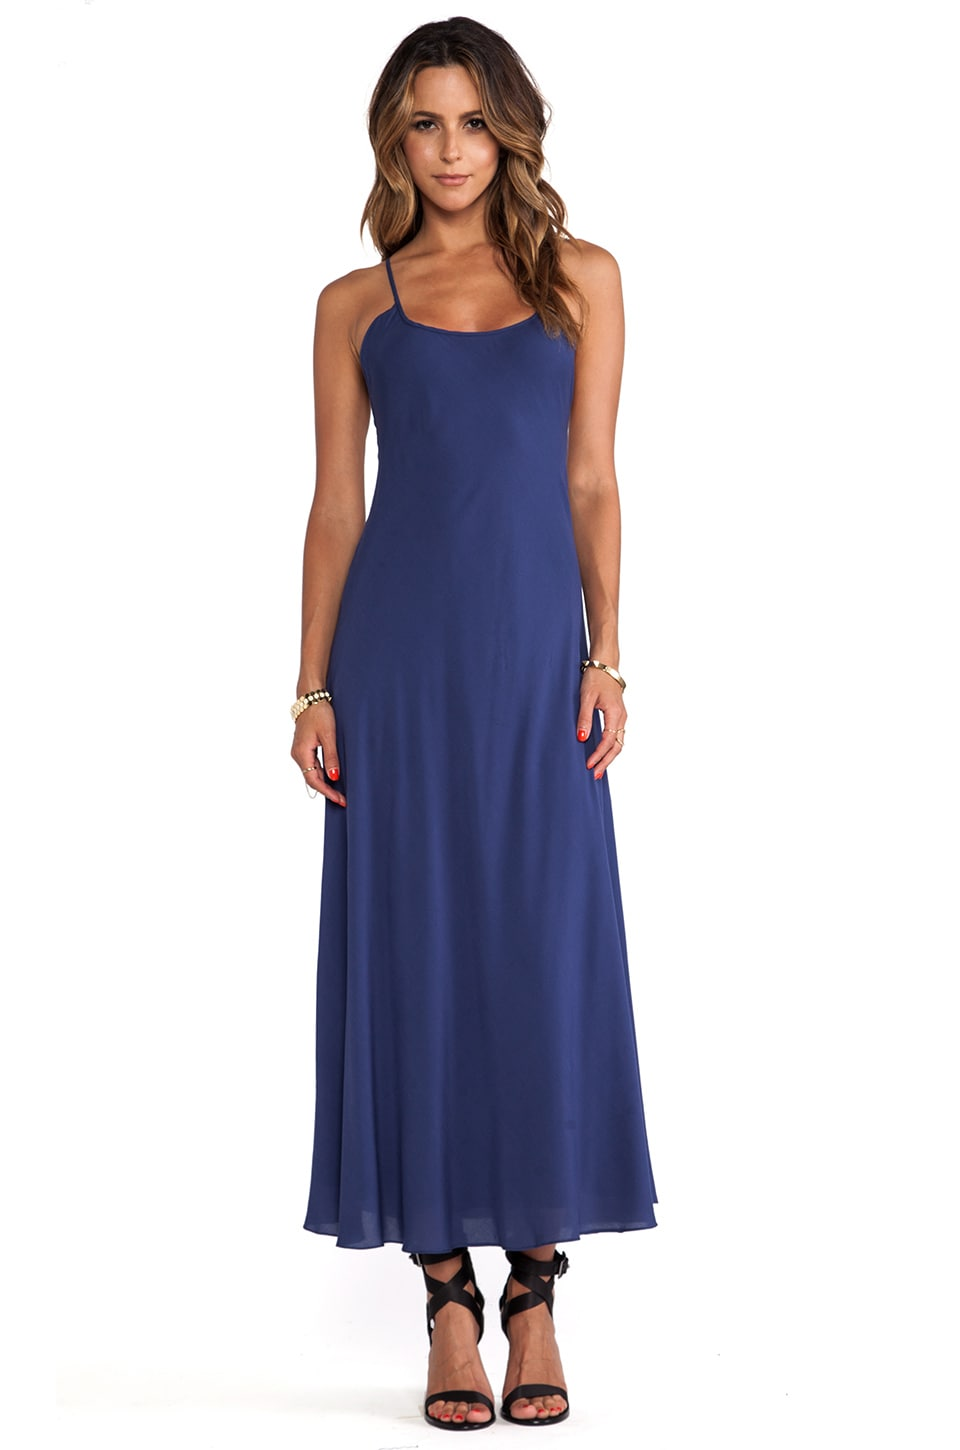 BLAQUE LABEL Maxi Dress in Navy